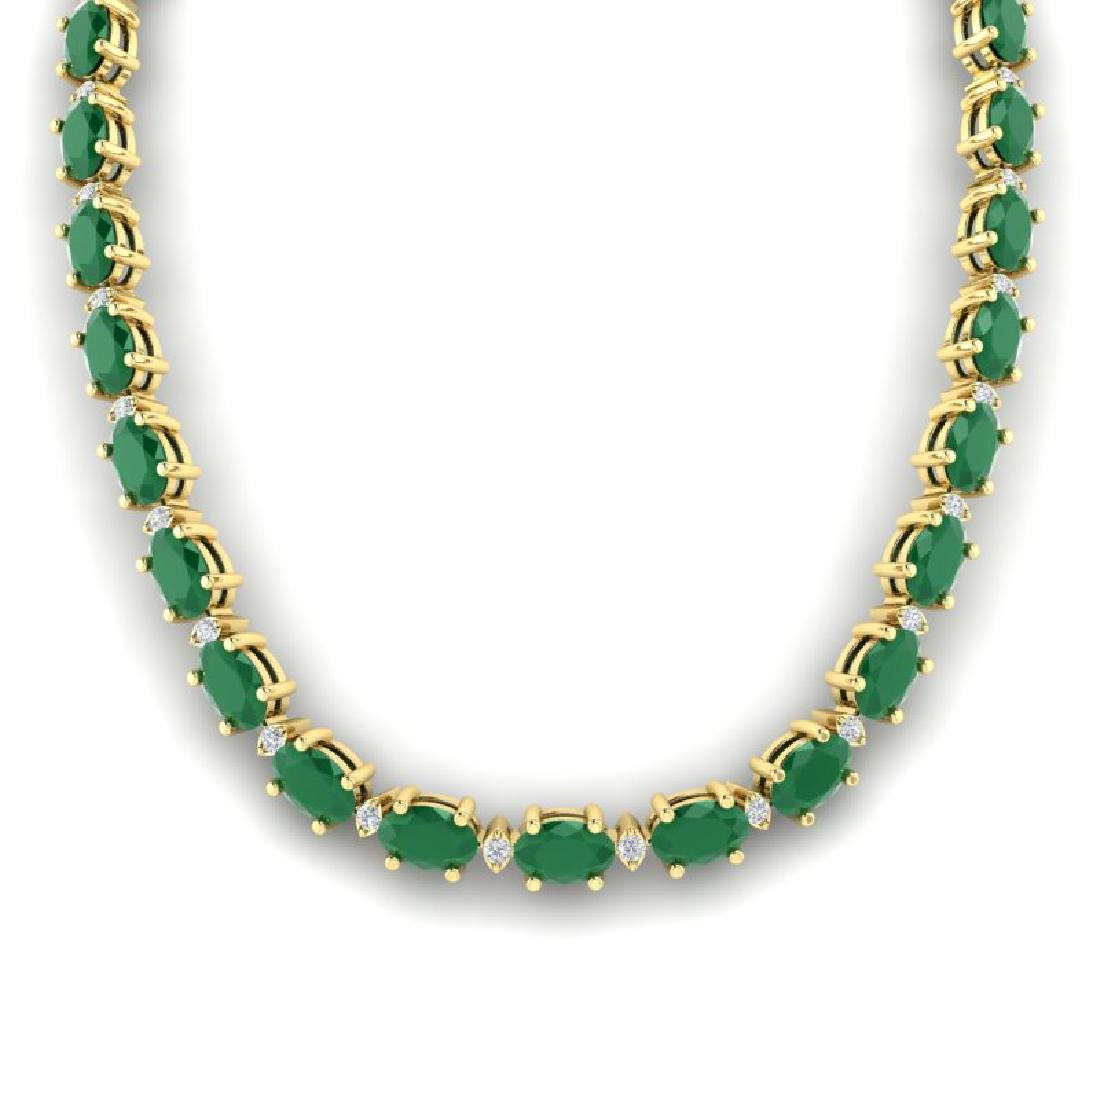 35 CTW Emerald & VS/SI Diamond Eternity Tennis Necklace - 3